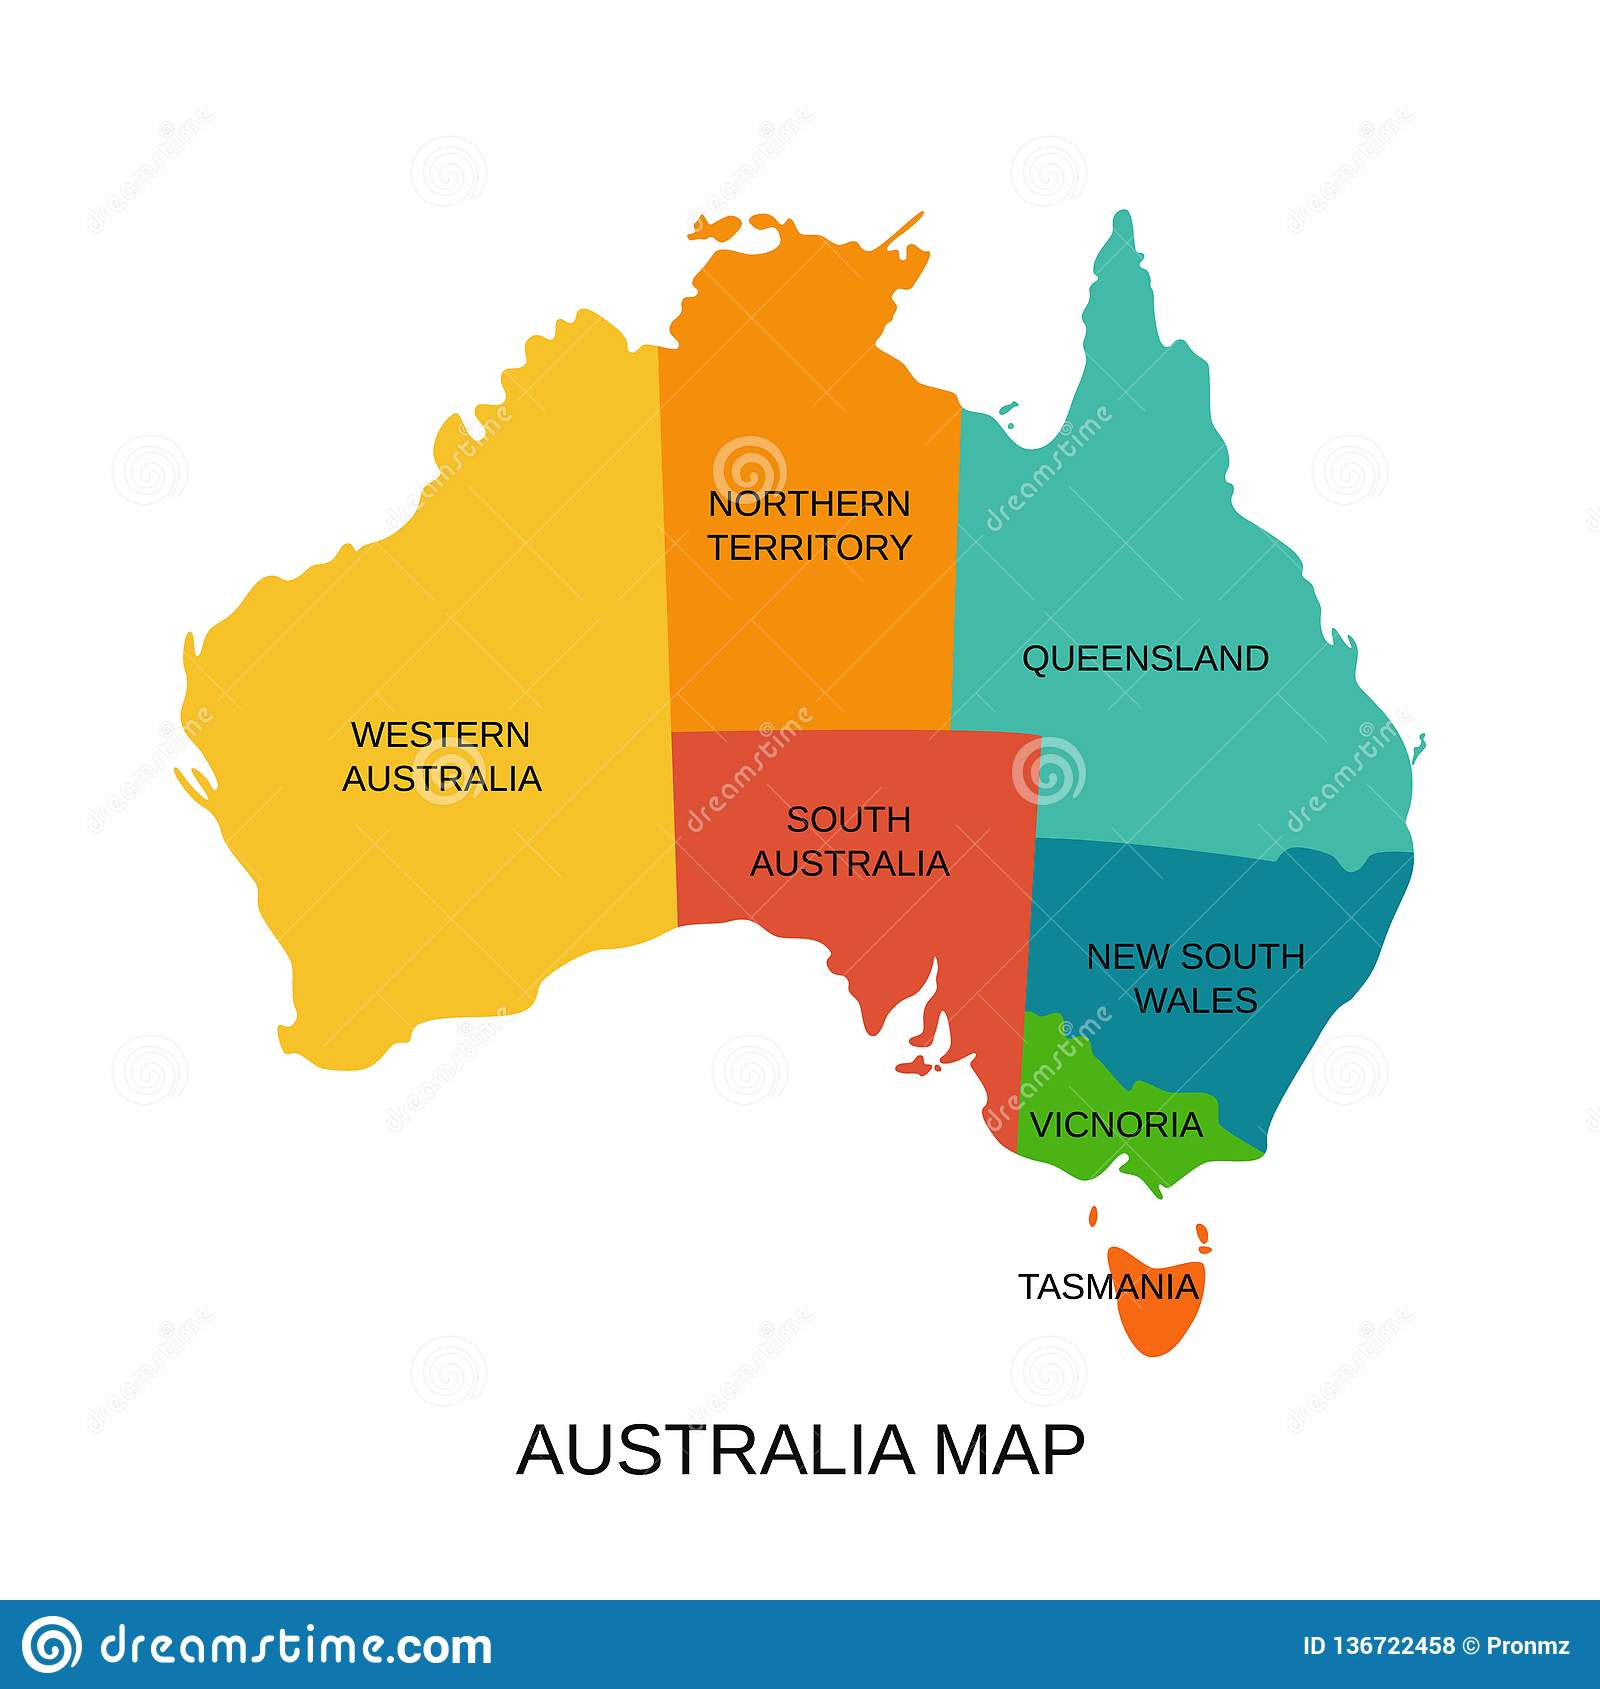 Australian State Map.Australia Map With Regions Vector Illustration Australian State